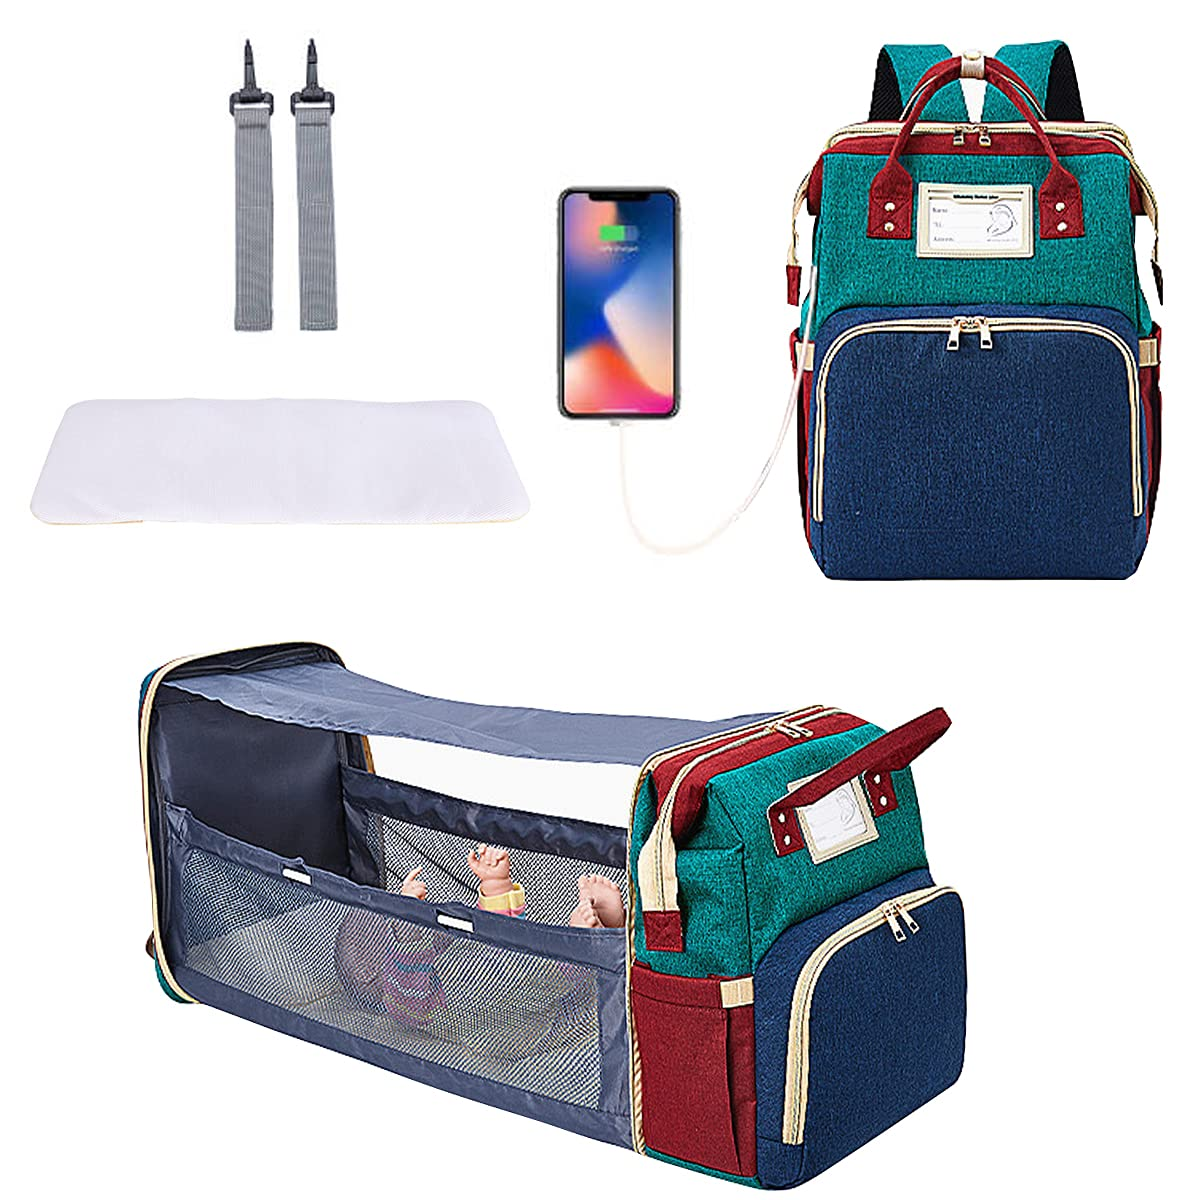 Diaper Bag with Changing Station,ProttyLife 3 in 1 Diaper Bag Backpack with Foldable Bed, Baby Bag Backpack, Portable Sleeping Mummy Bag with Bassinet Mat Pad Stroller Hook USB Charge (Multicolored)